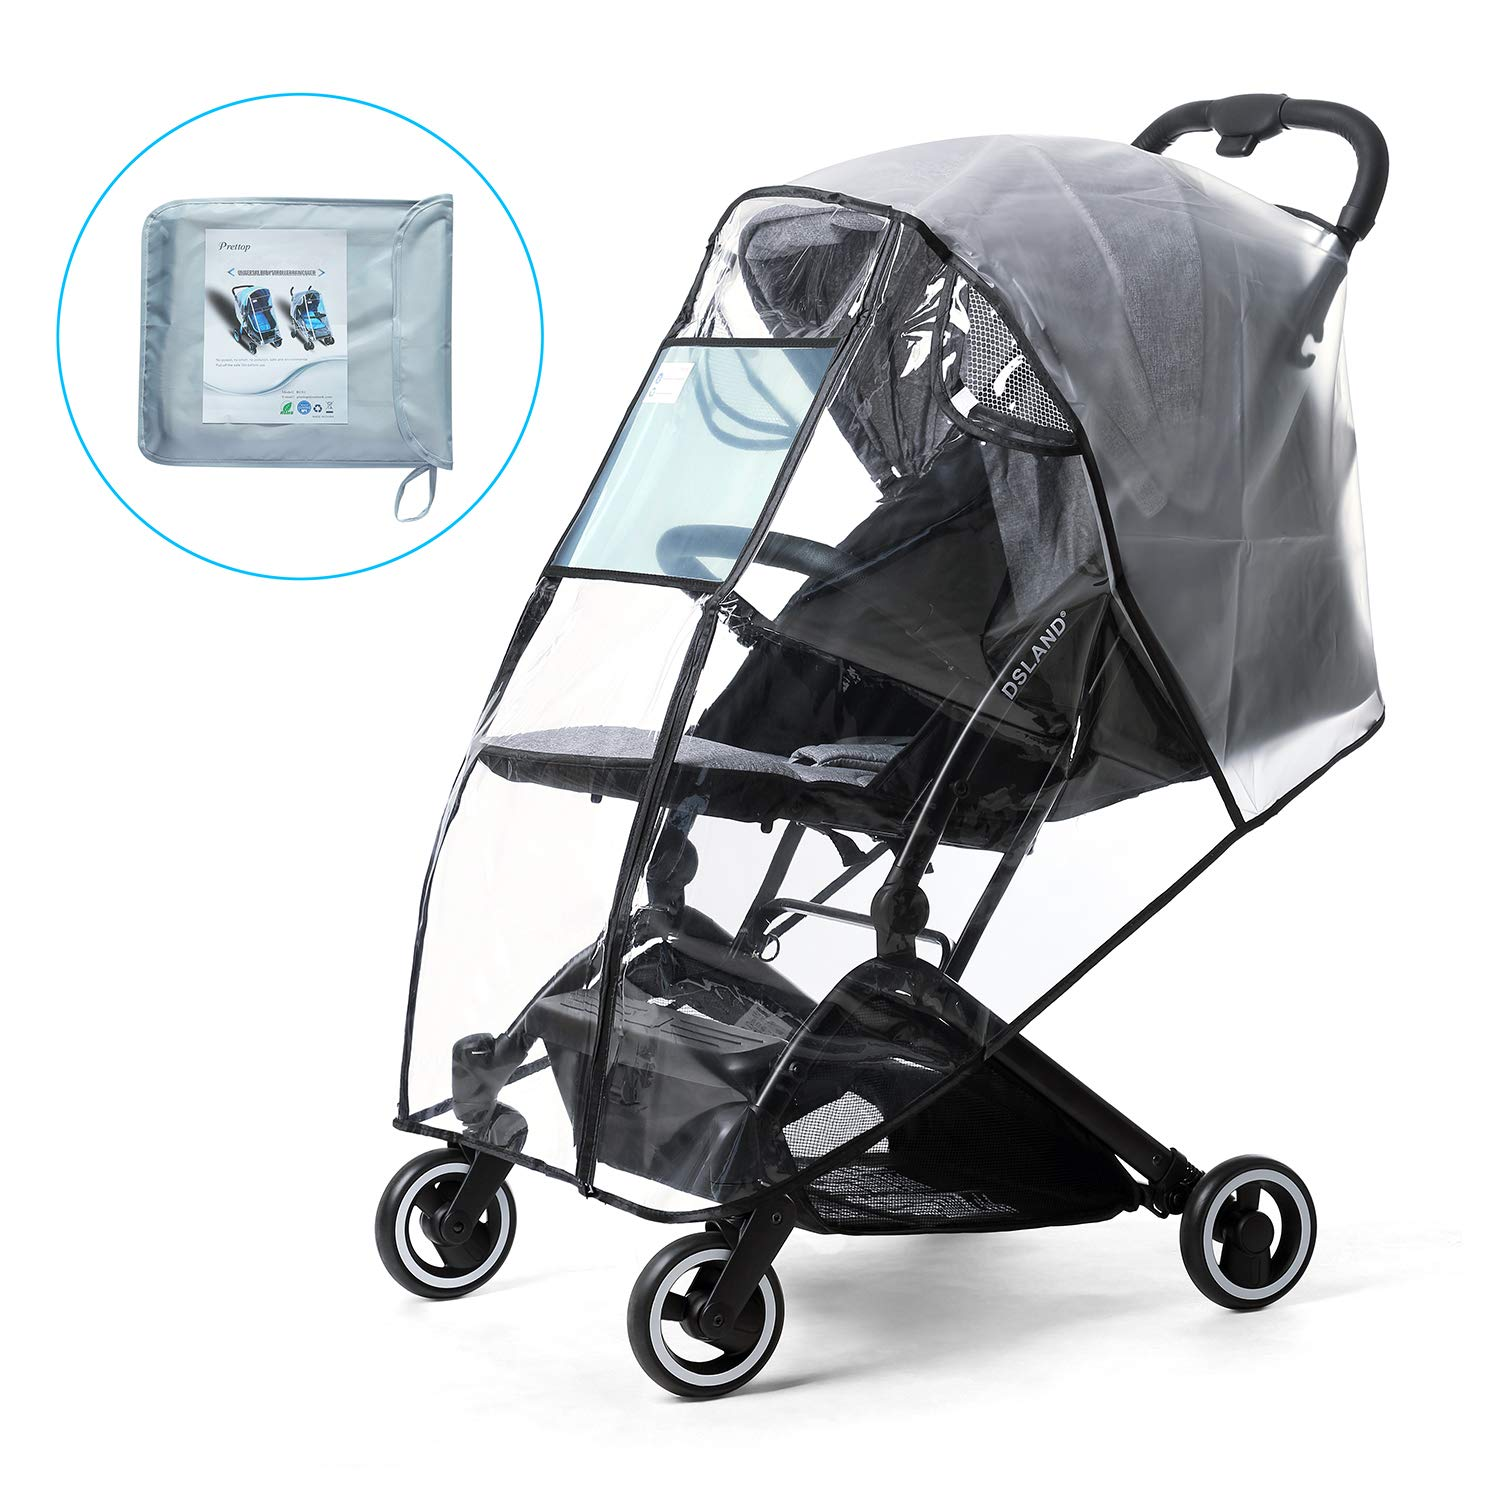 Rain Cover for Stroller, Prettop Universal Baby Jeep Jogging Stroller Weather Shield Accessories with Storage Pouch, Clear Windproof Waterproof Travel Umbrella Cover for Pram,Outdoor Use (Air Holes)